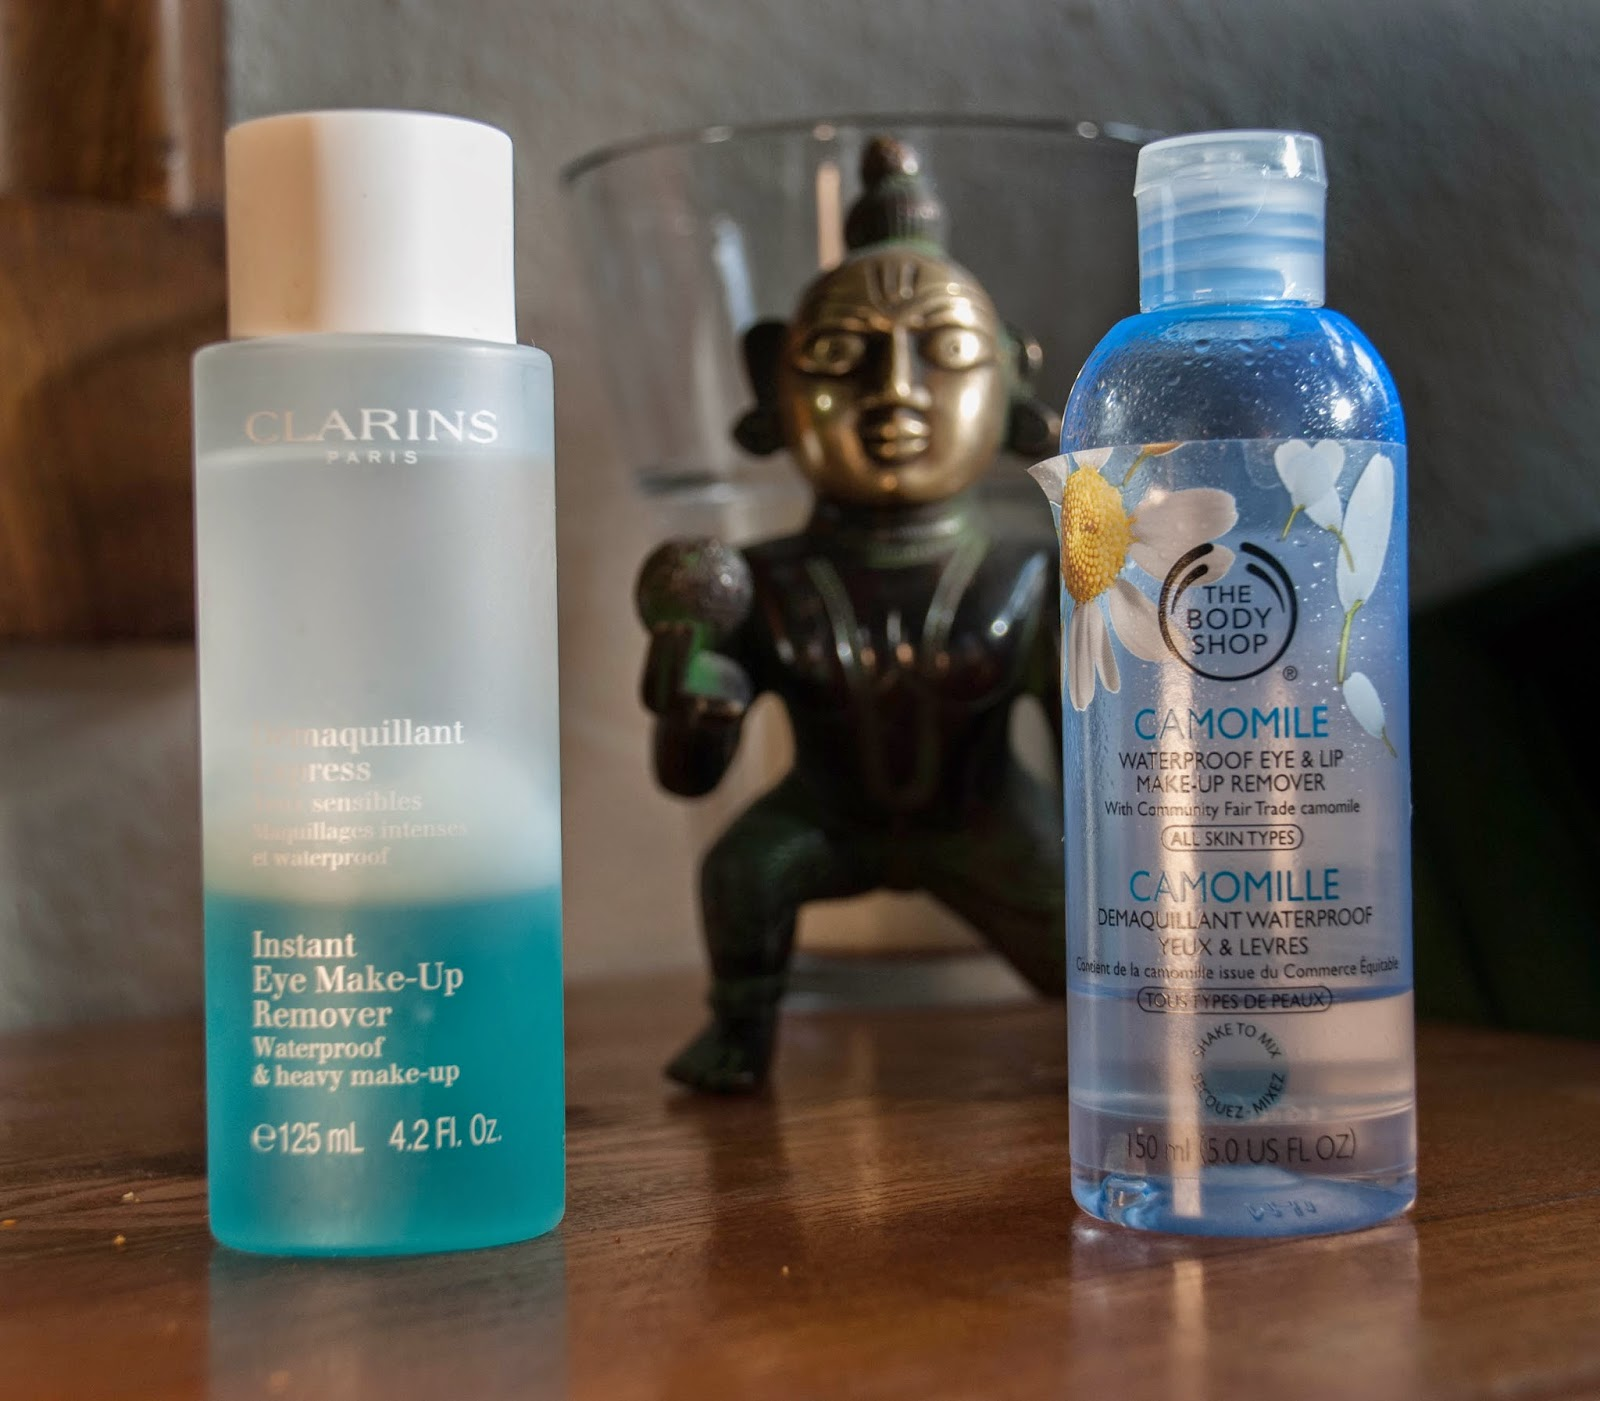 Clarins vs The Body Shop: How do they compare?